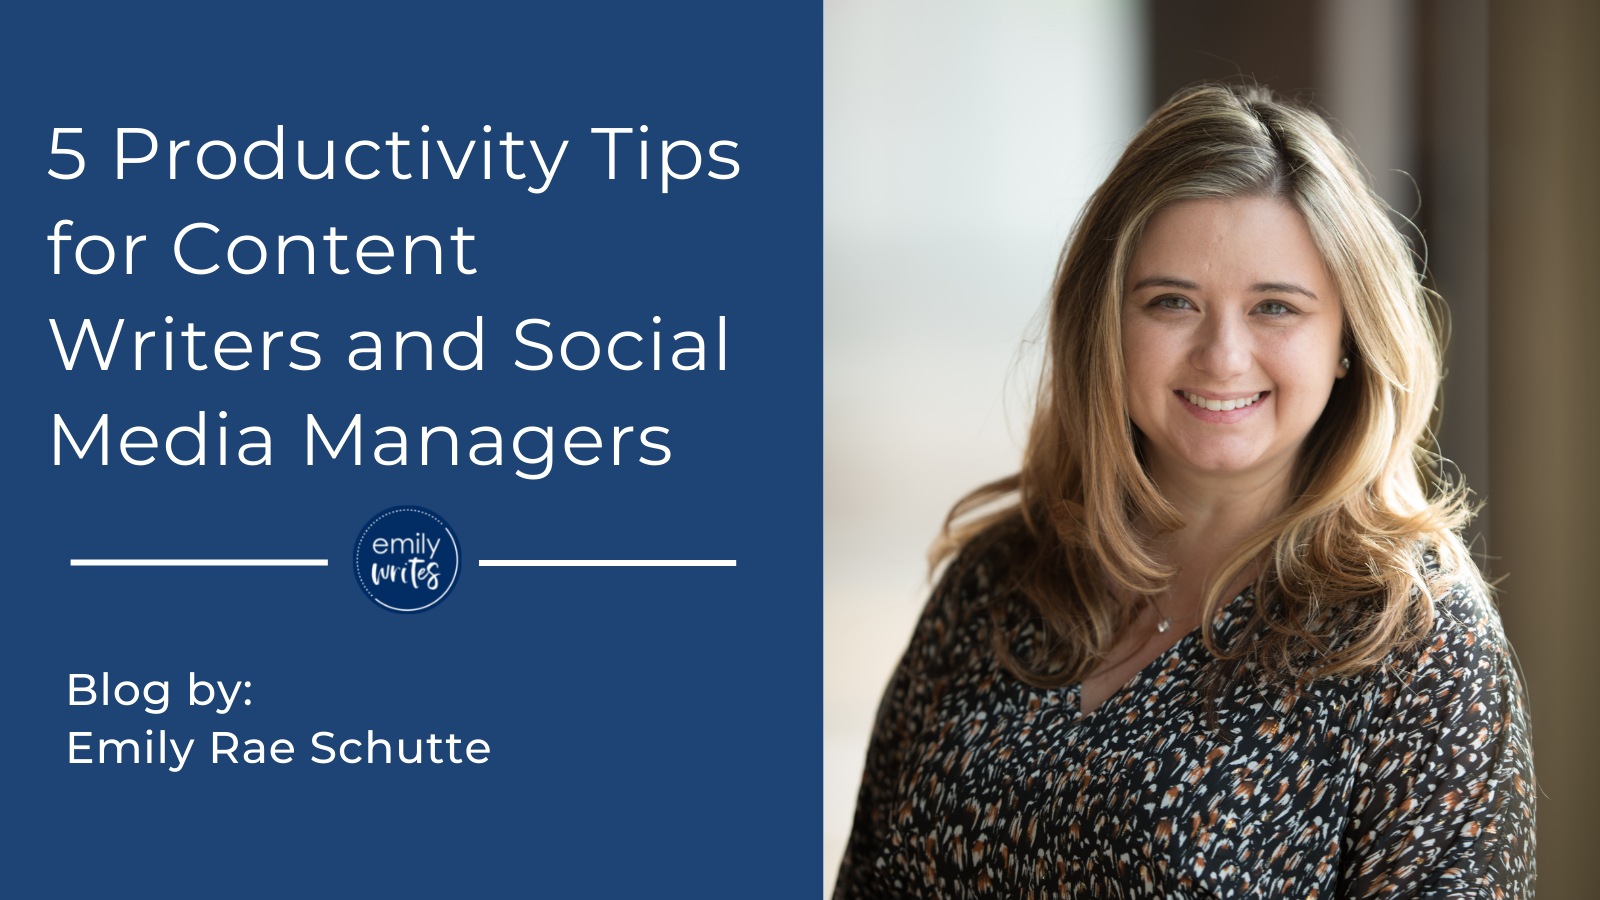 5 Productivity Tips for Content Writers and Social Media Managers